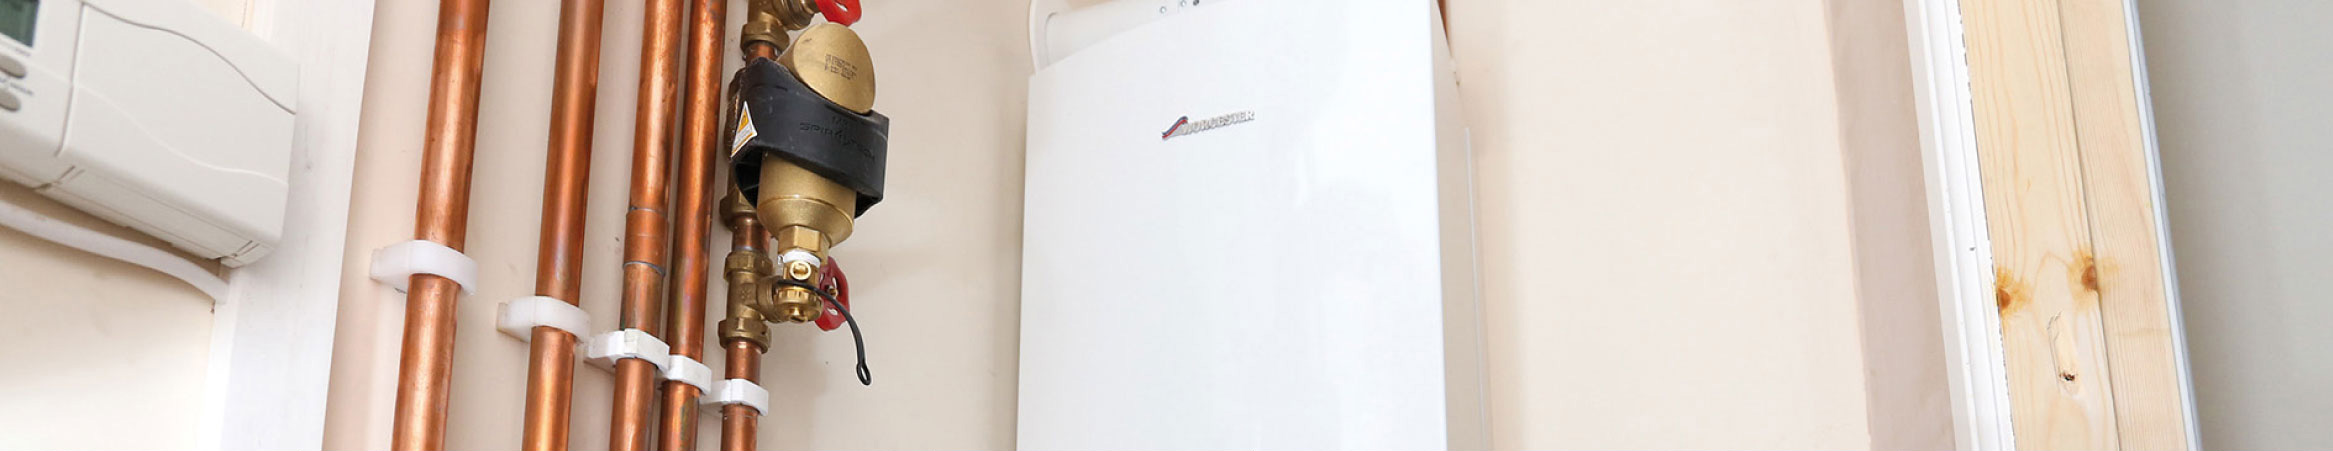 New boiler installation Bramhall